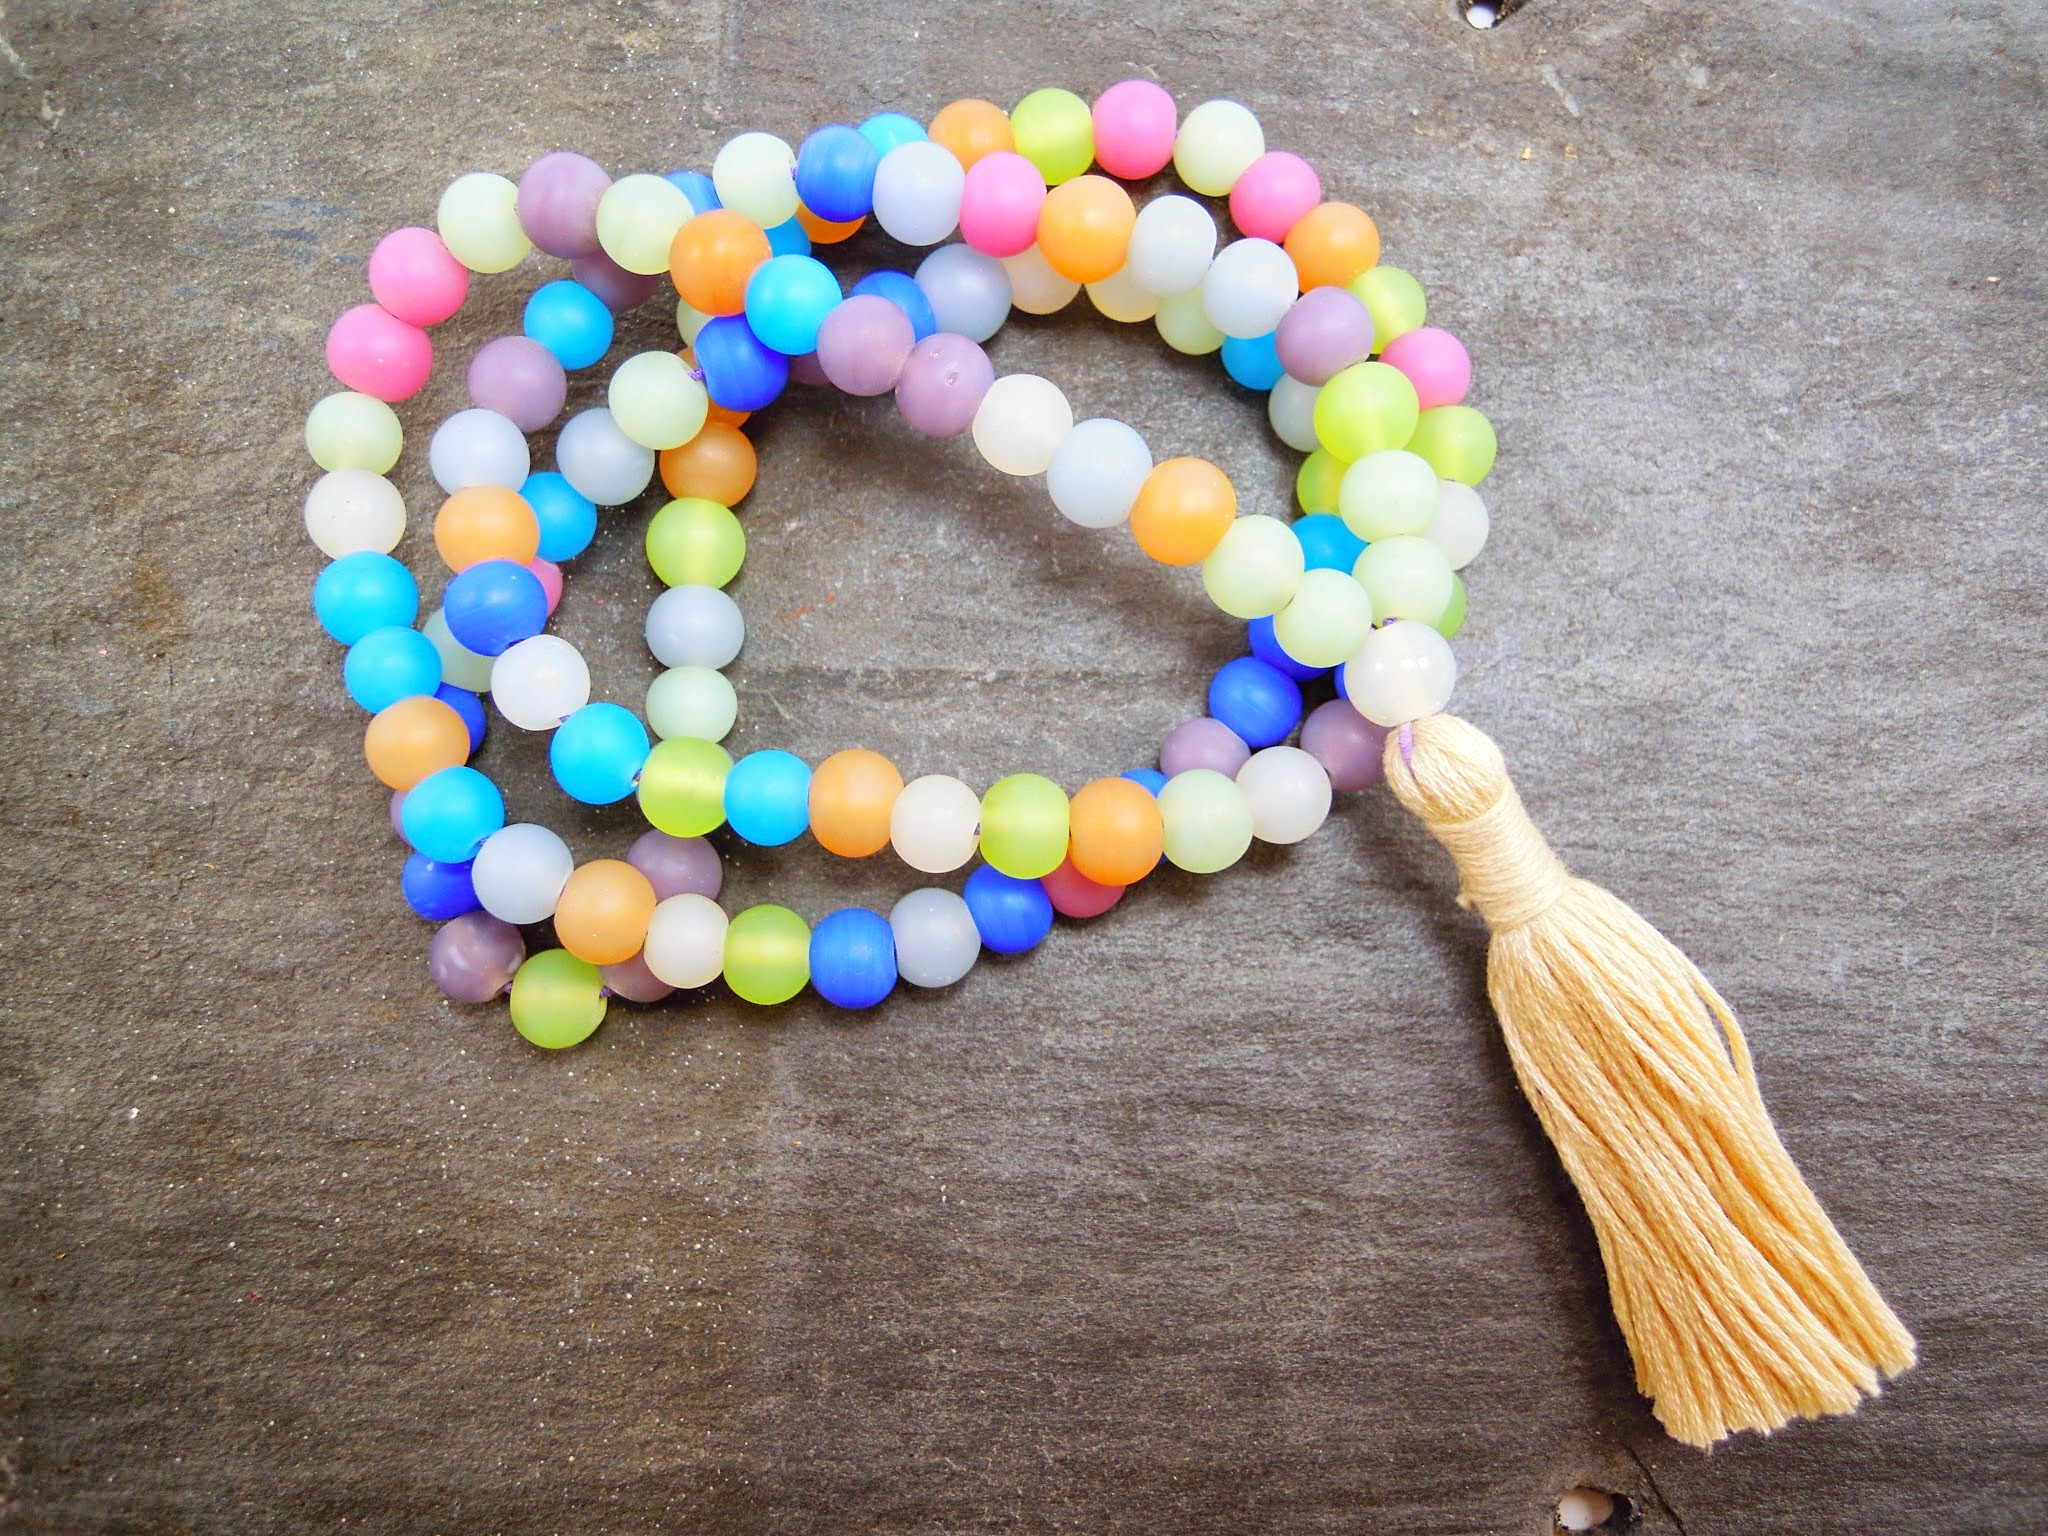 Spring Eternal Mala with handmade tassel. This mala is strung on stretchy cord so you can easily wrap it around your wrist.